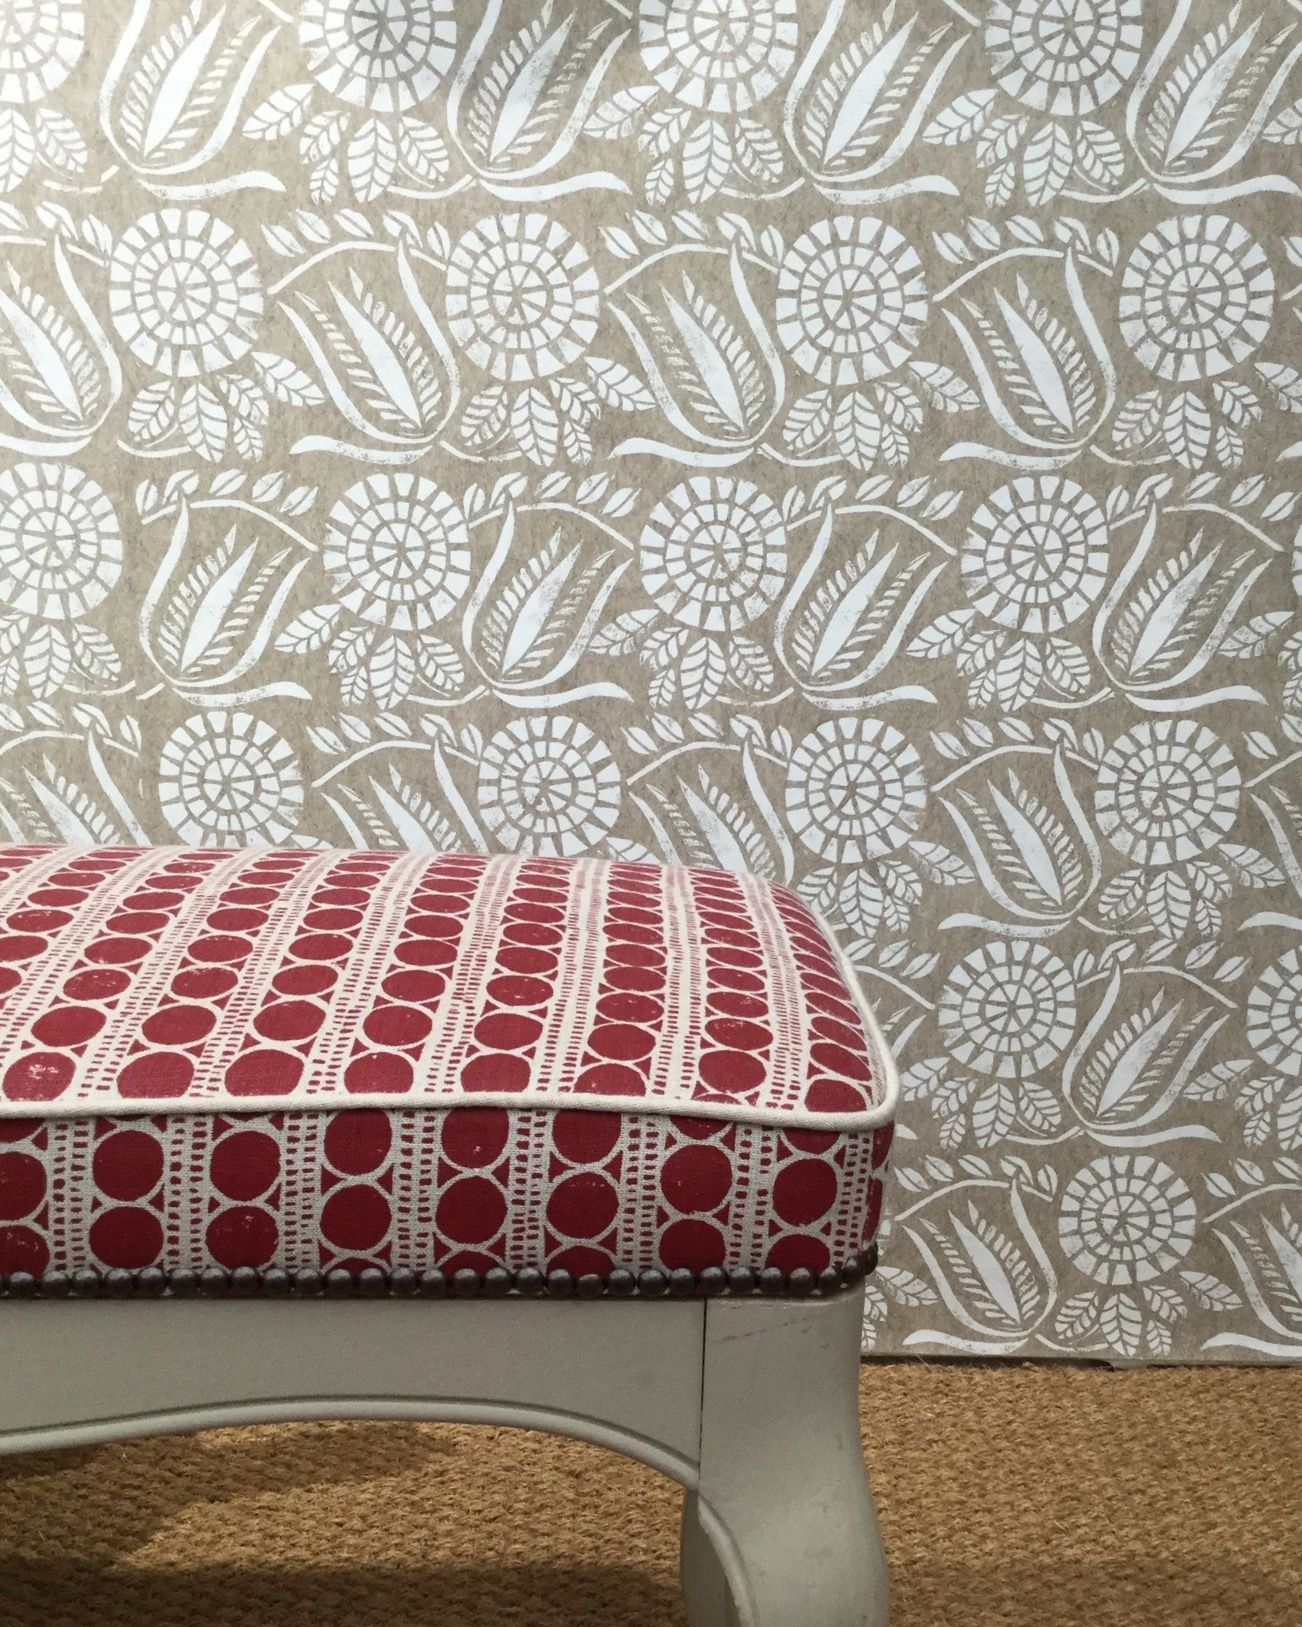 Bloomsbury hand printed Wallpaper in white on a natural 1302x1627